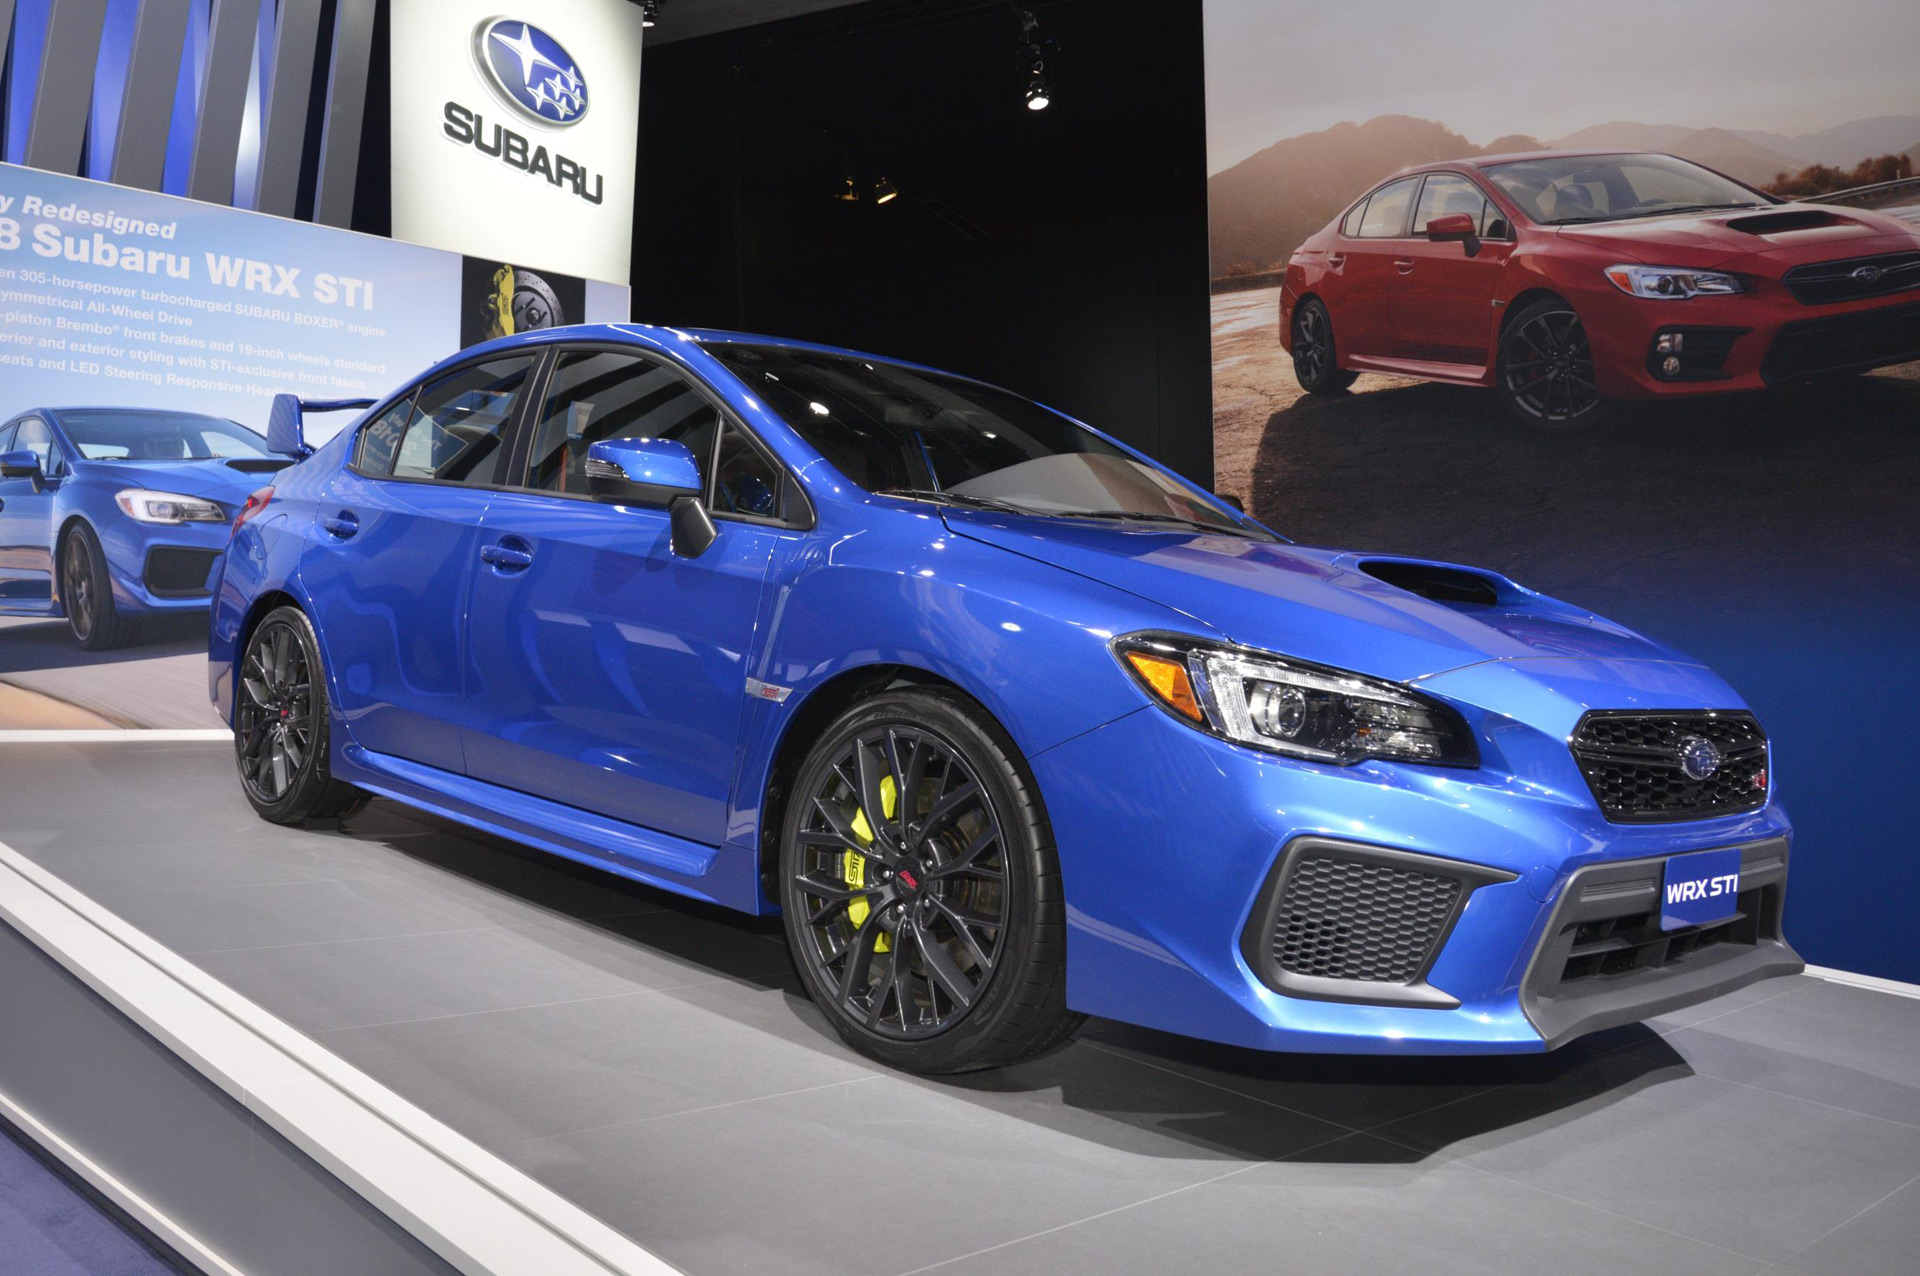 subaru wrx priced from 27 855 wrx sti from 36 995 autozaurus. Black Bedroom Furniture Sets. Home Design Ideas